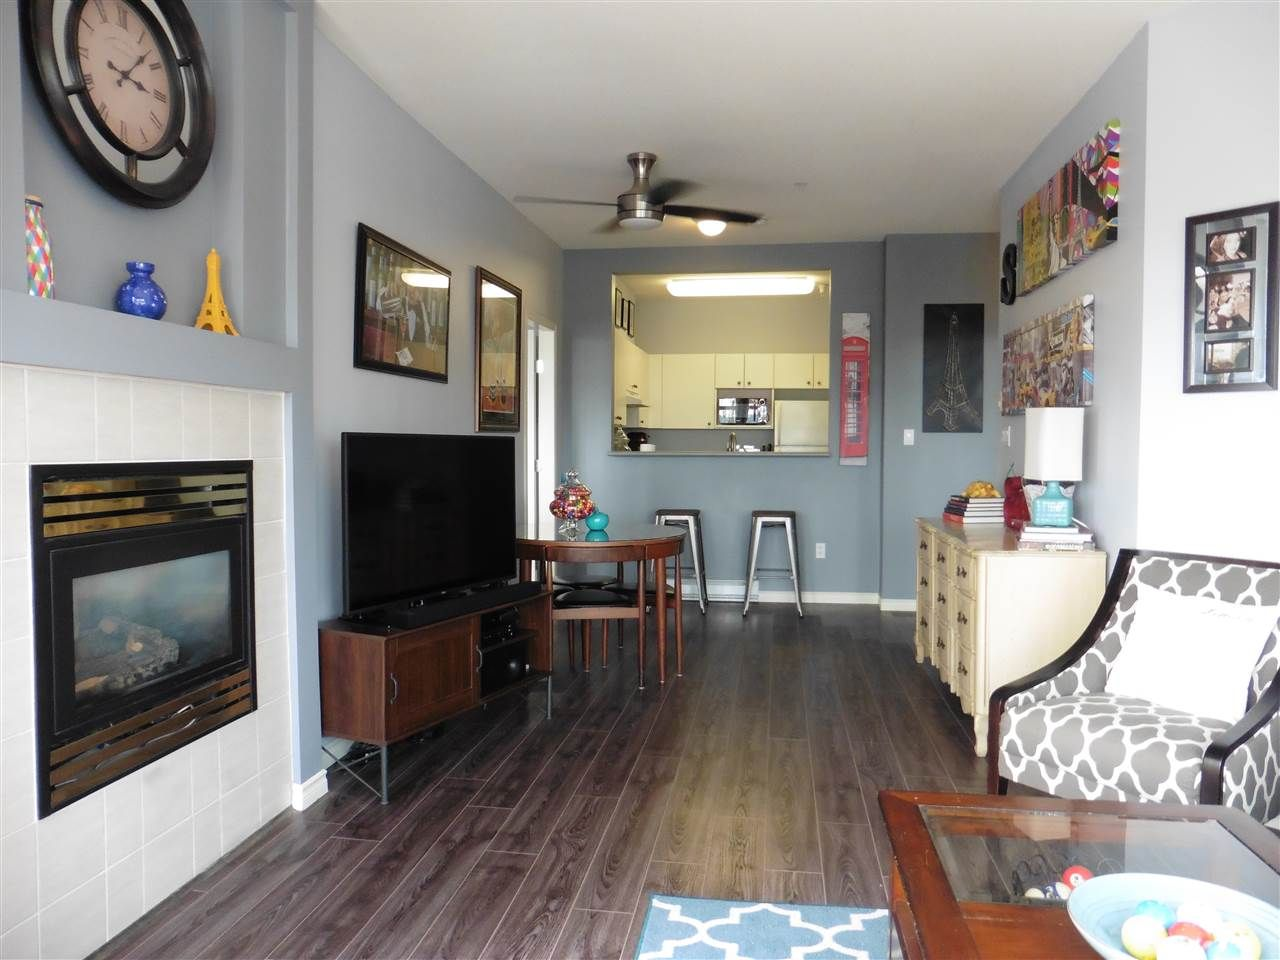 """Photo 5: Photos: 307 580 TWELFTH Street in New Westminster: Uptown NW Condo for sale in """"THE REGENCY"""" : MLS®# R2193816"""